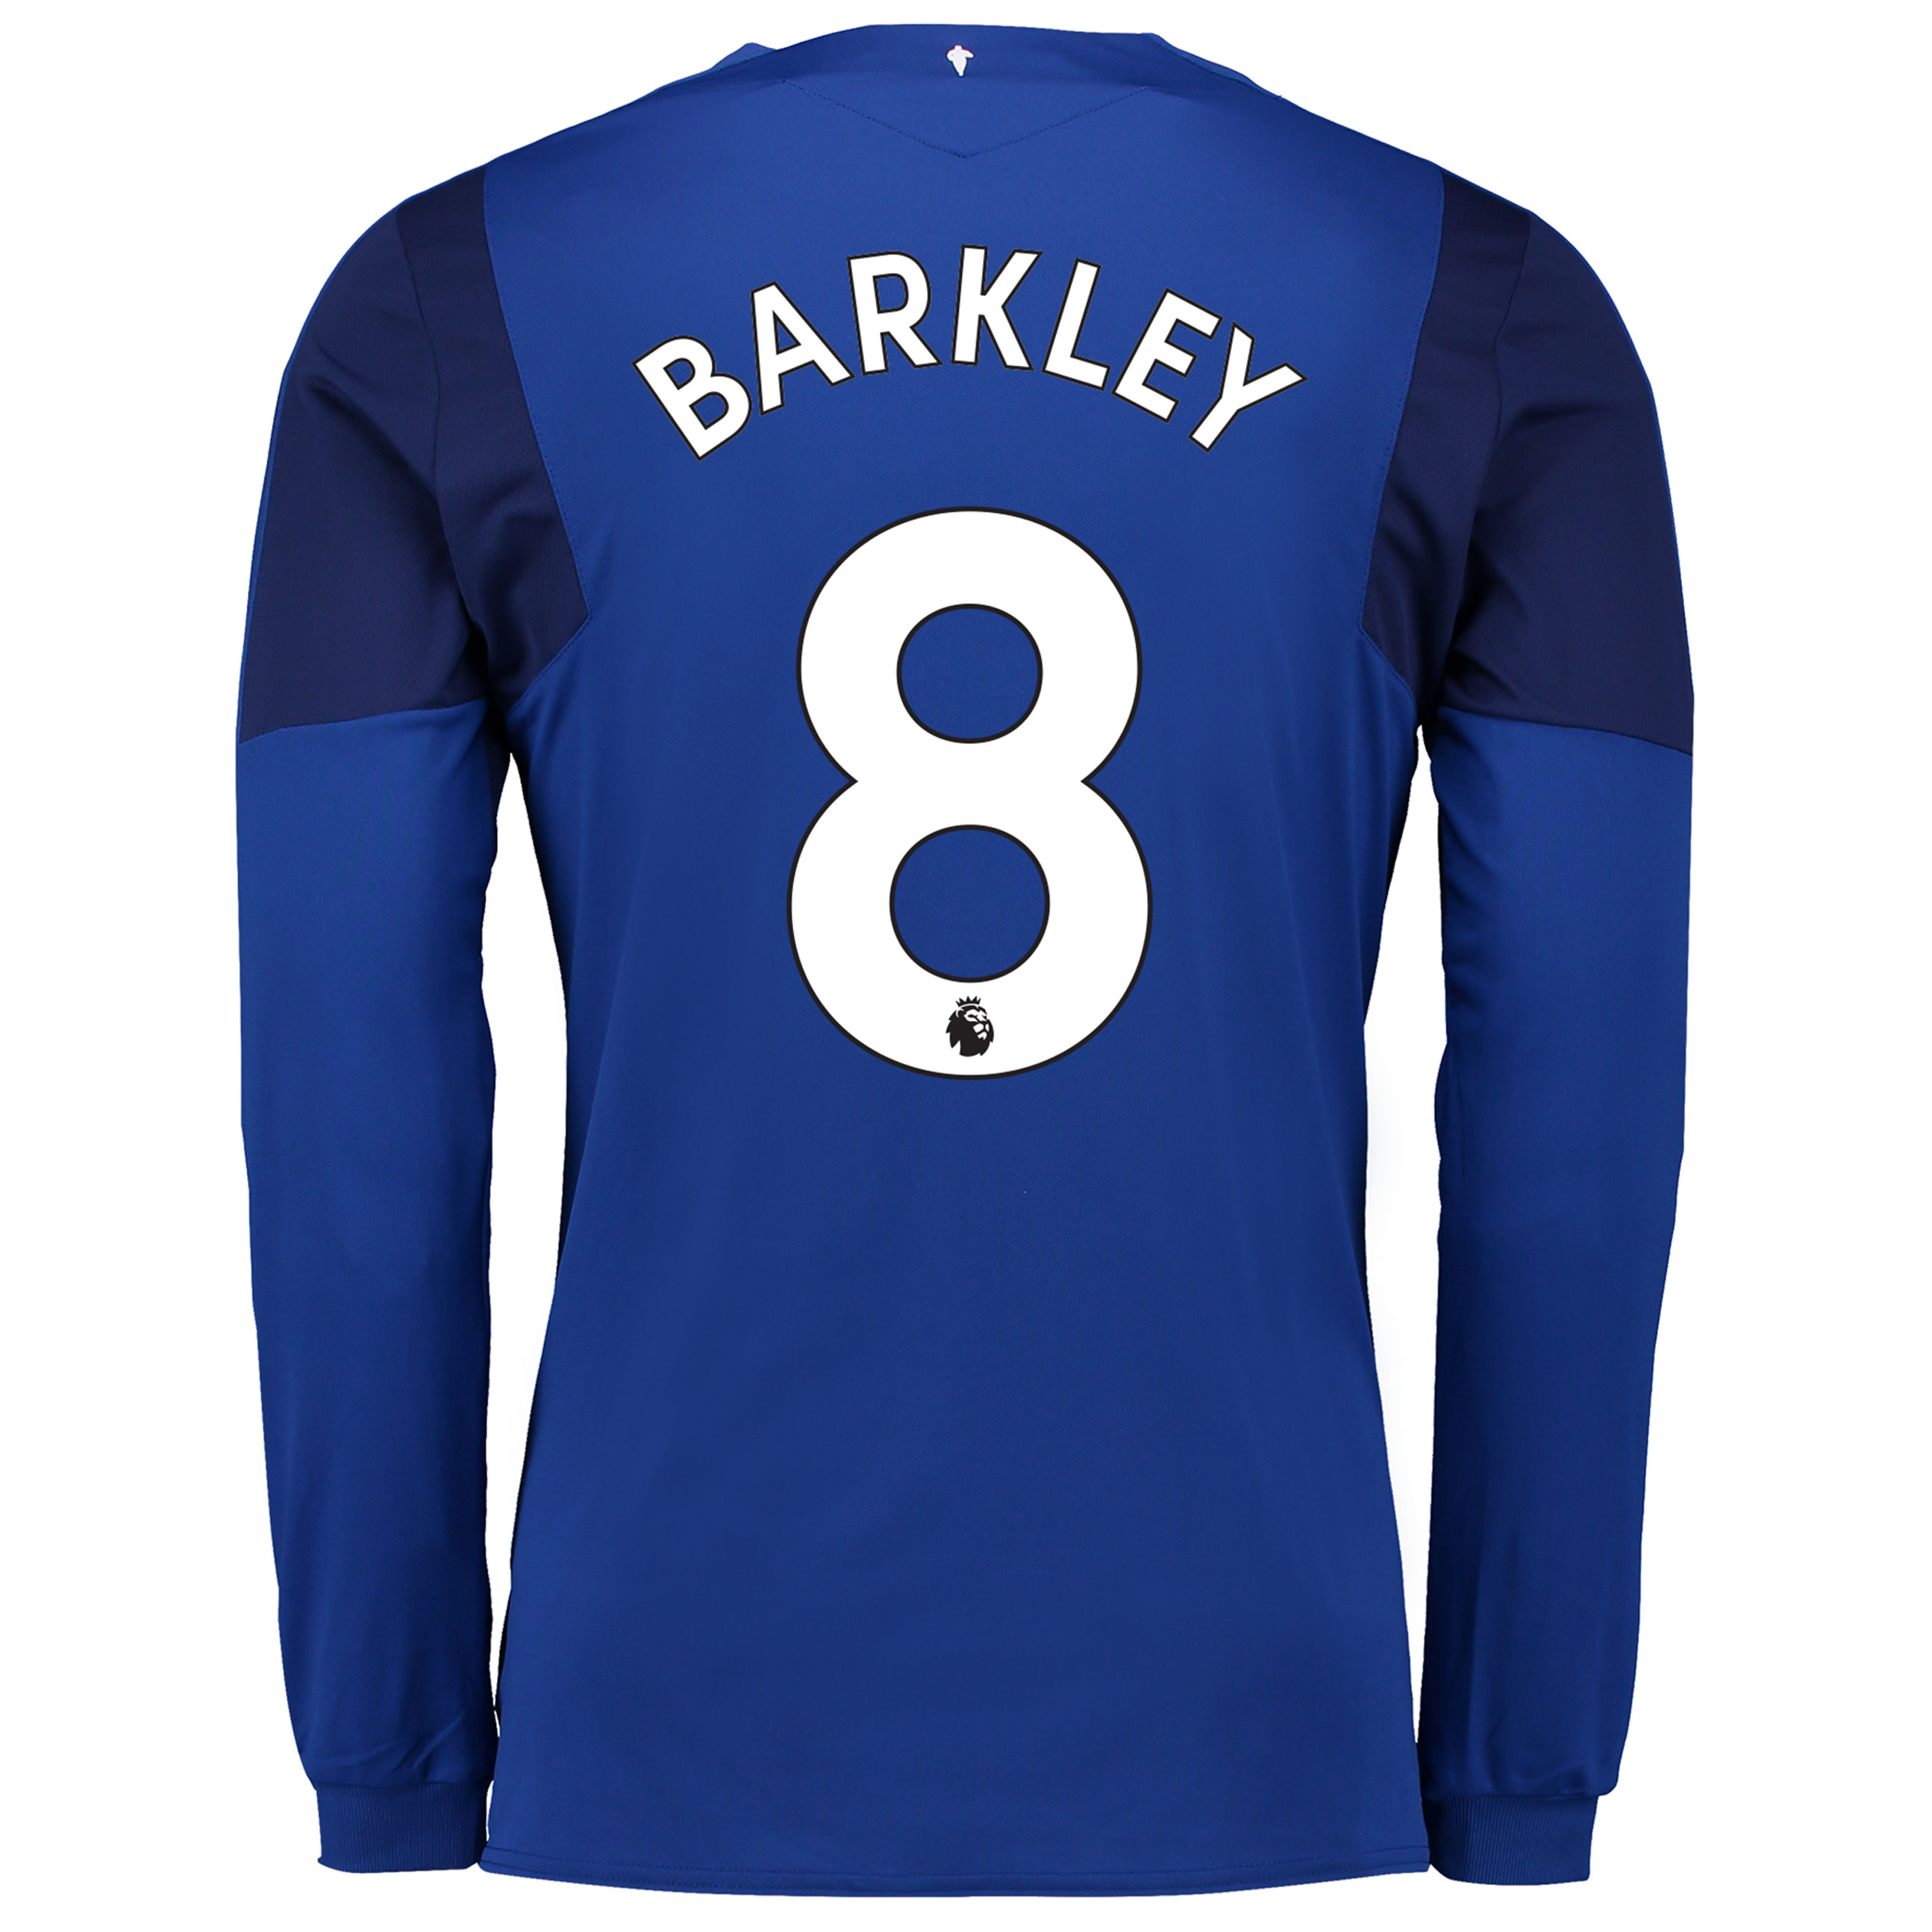 Everton Home Shirt 2017/18 - Junior - Long Sleeved with Barkley 8 prin